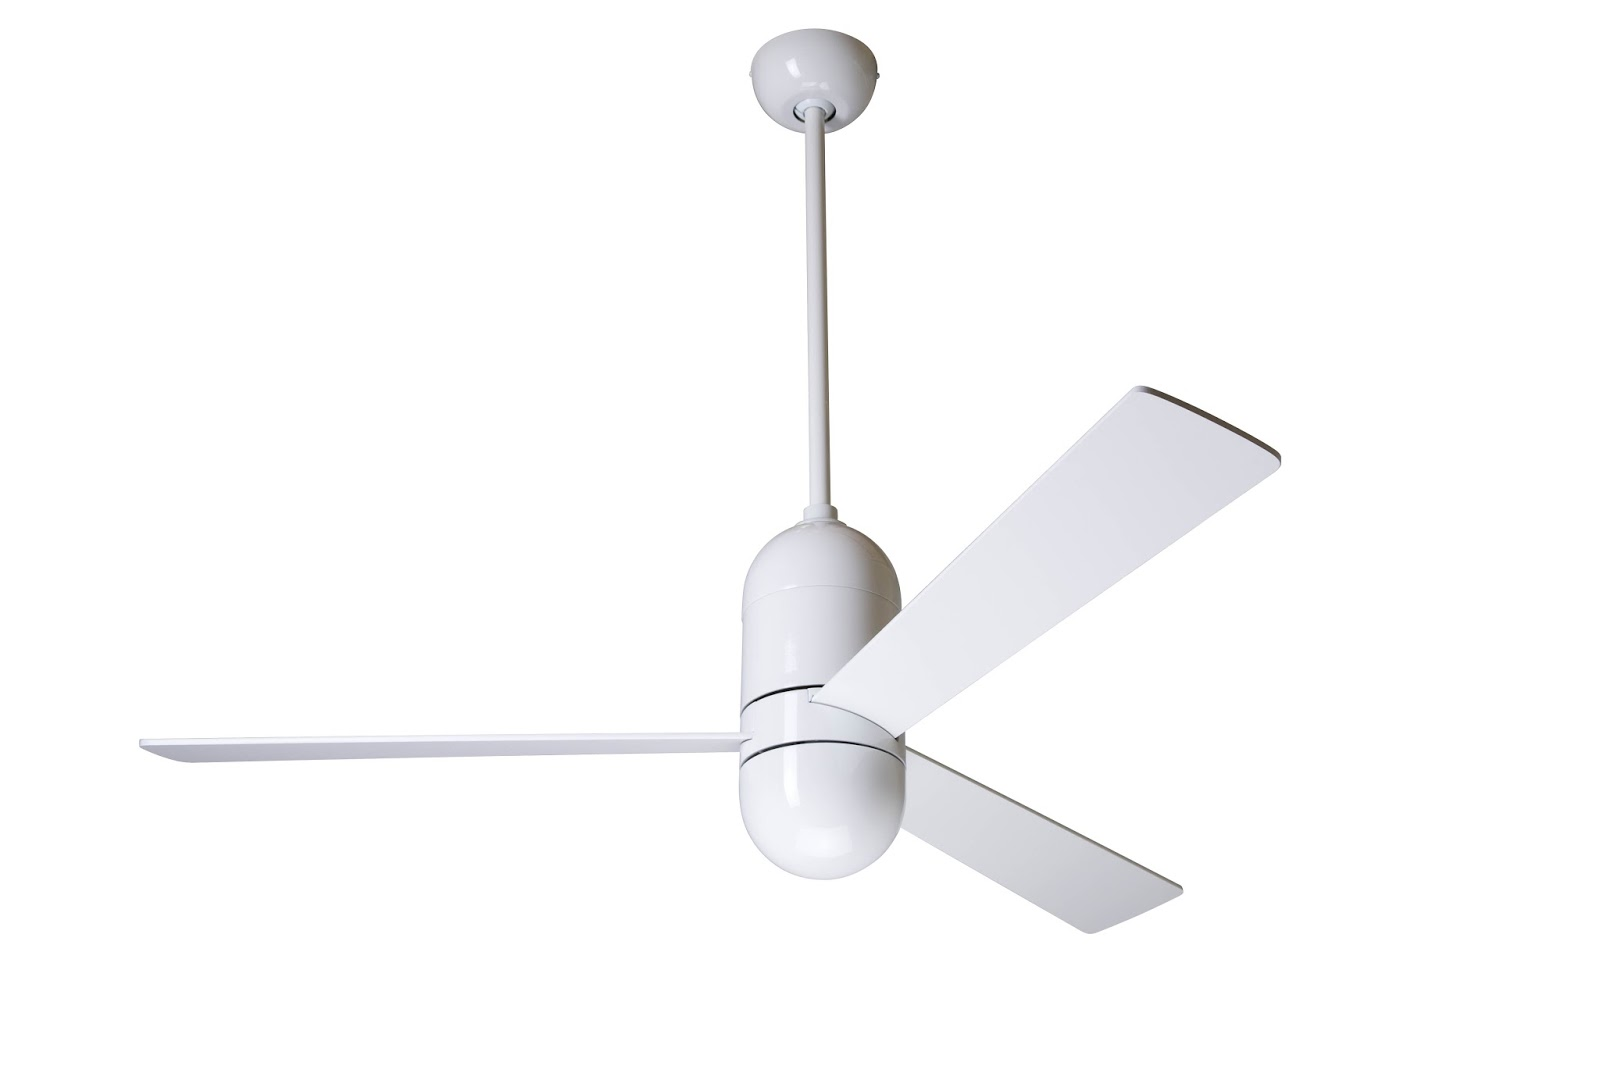 White Modern Ceiling Fan Cirrus Ceiling Fan By Modern Fan With Light